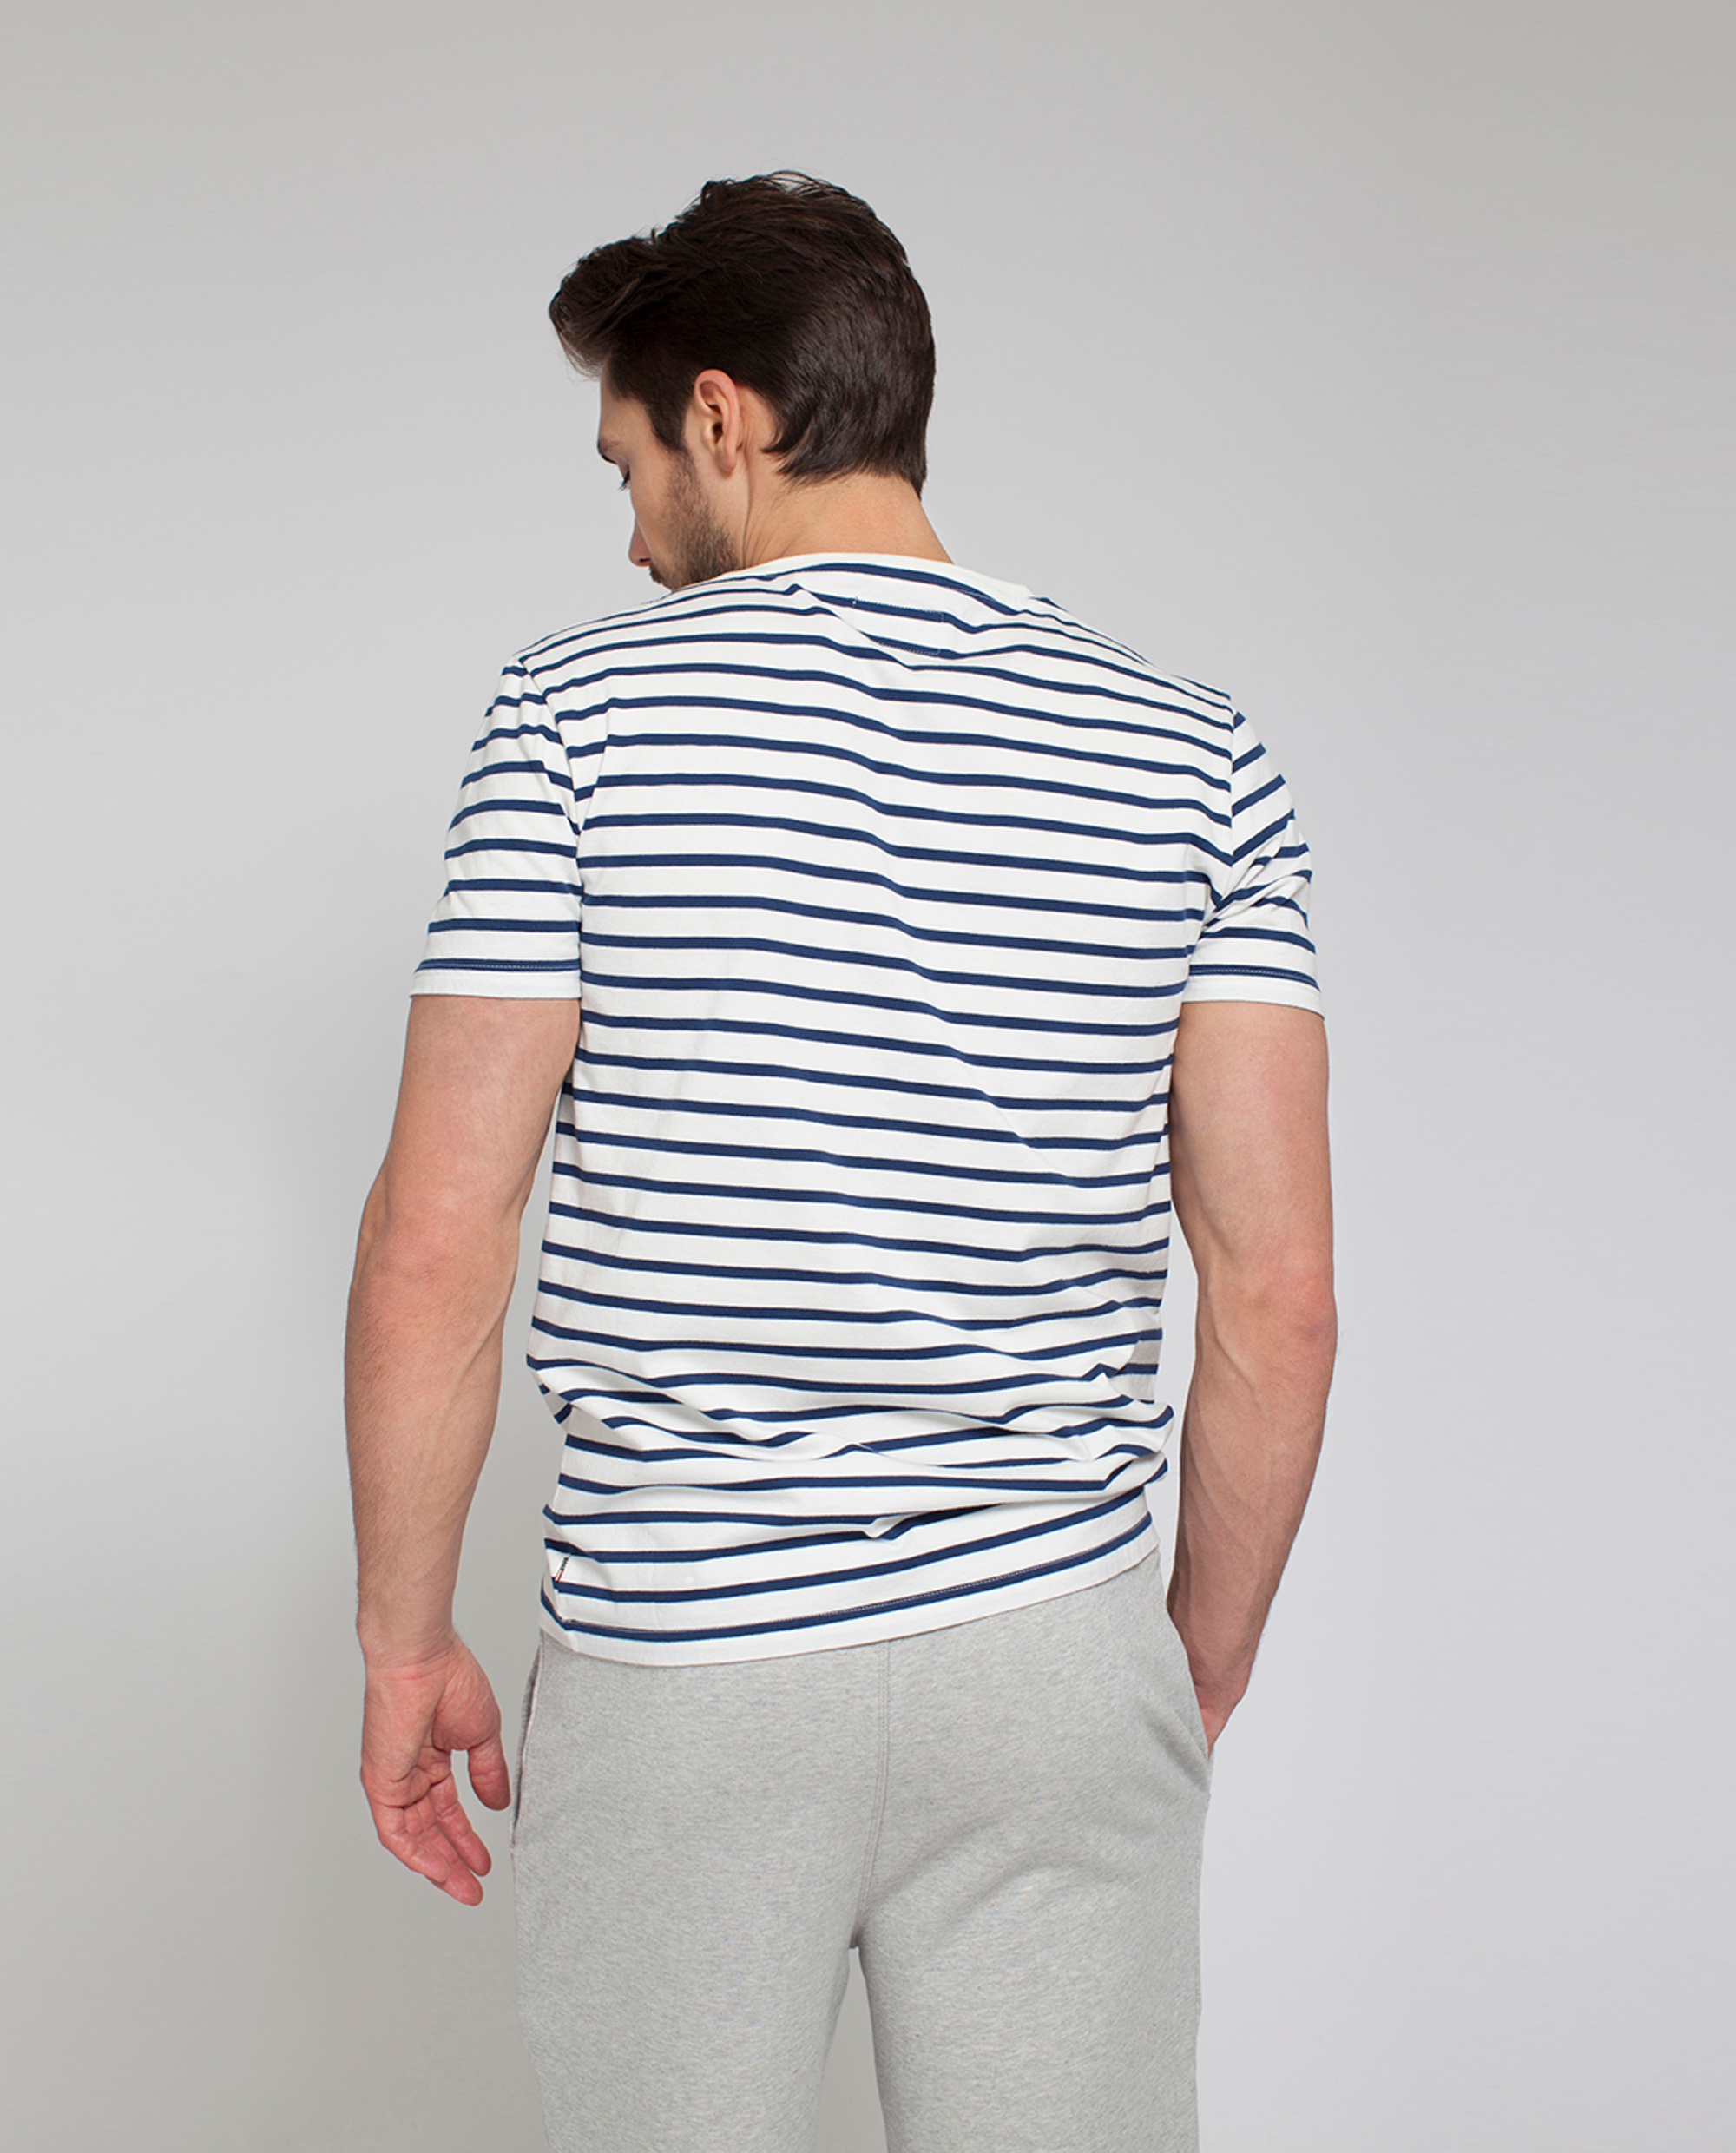 Mick Striped Tee, White/Blue